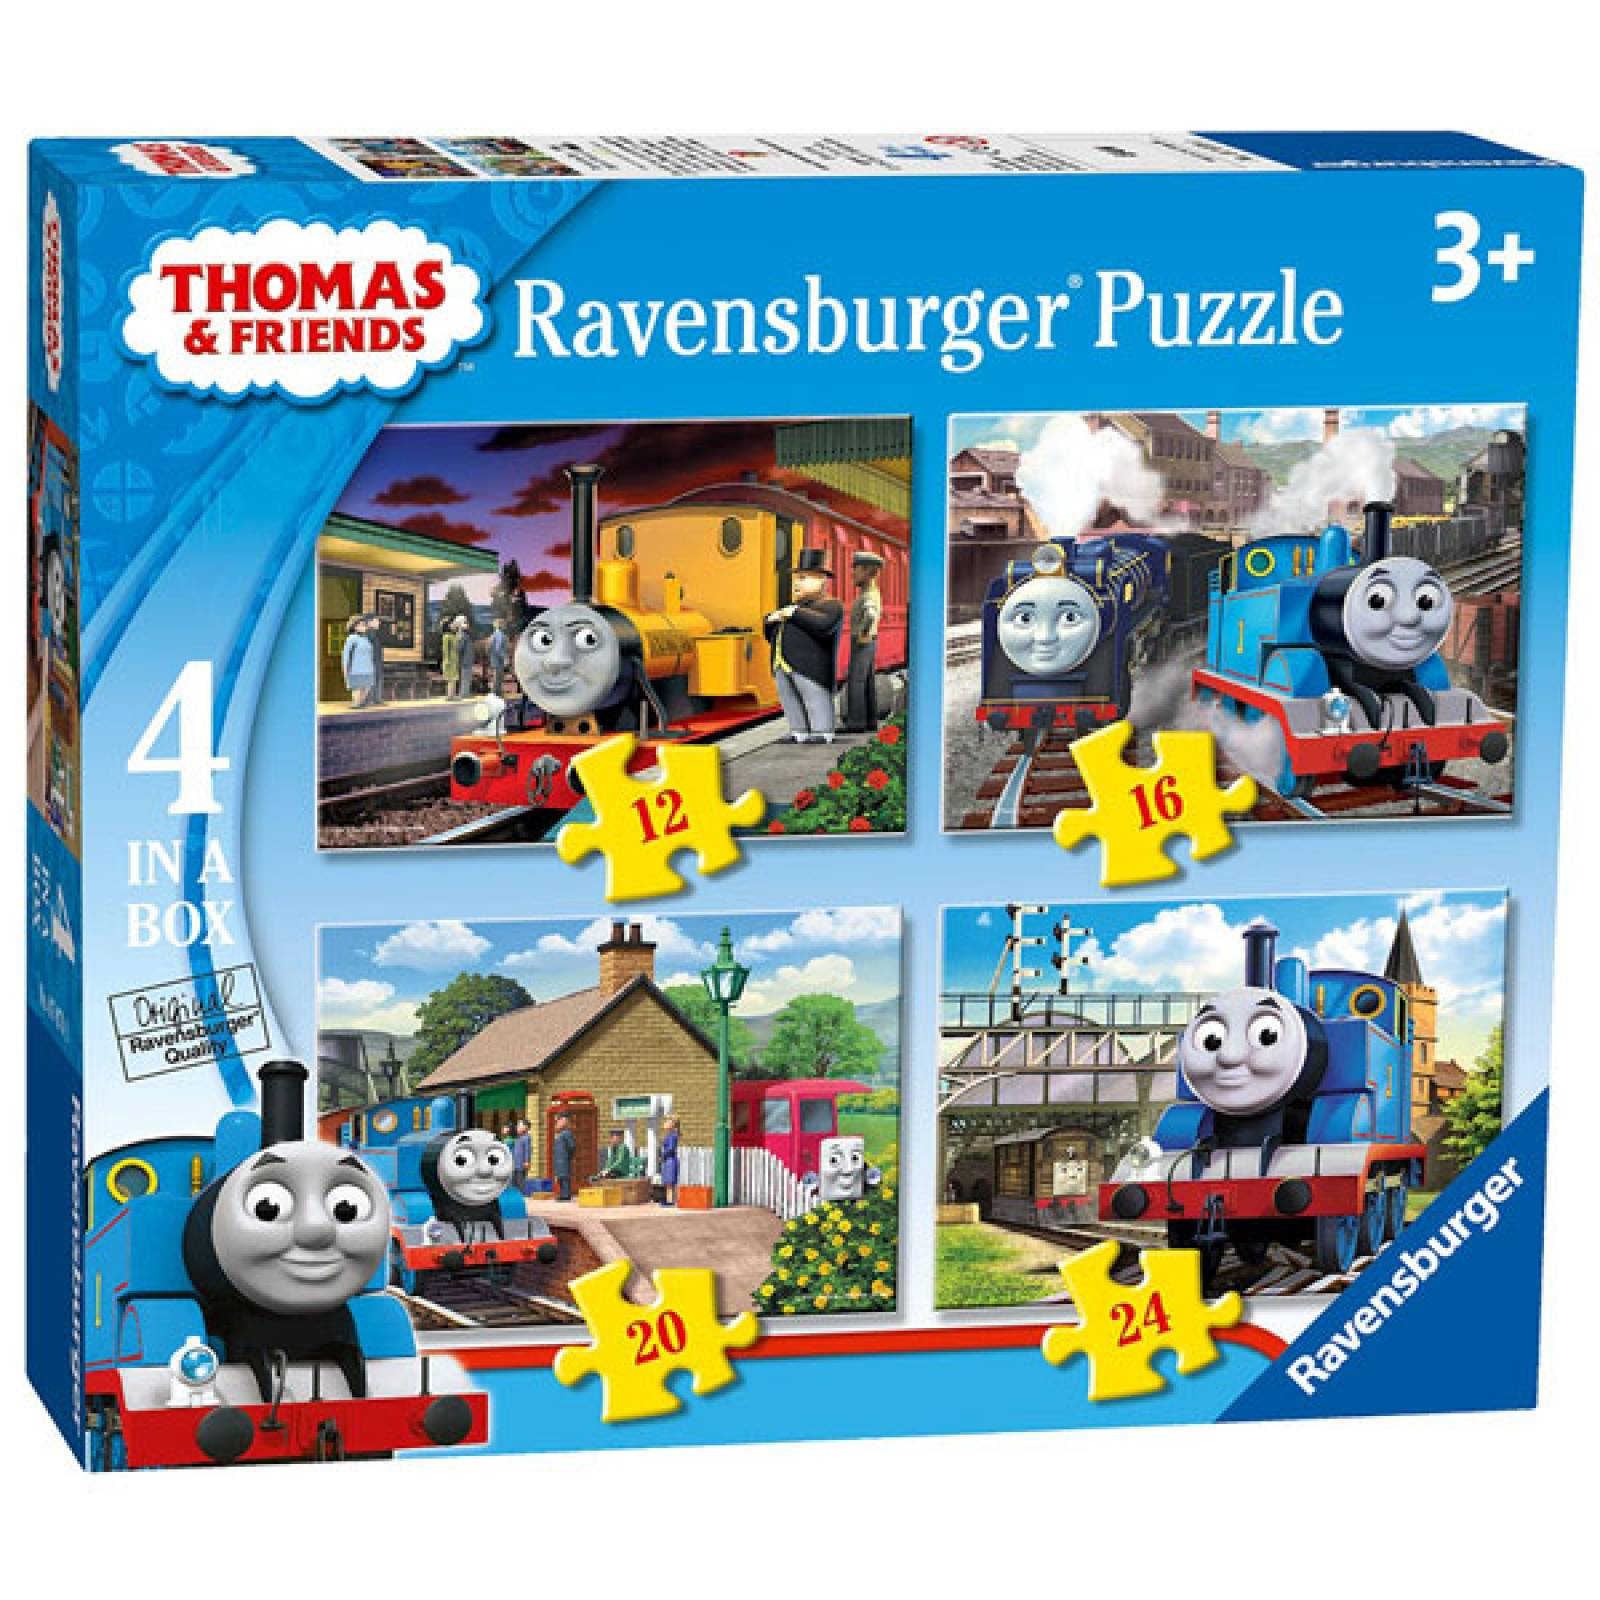 Thomas & Friends 4 in Box Jigsaw Puzzles Ages 3+